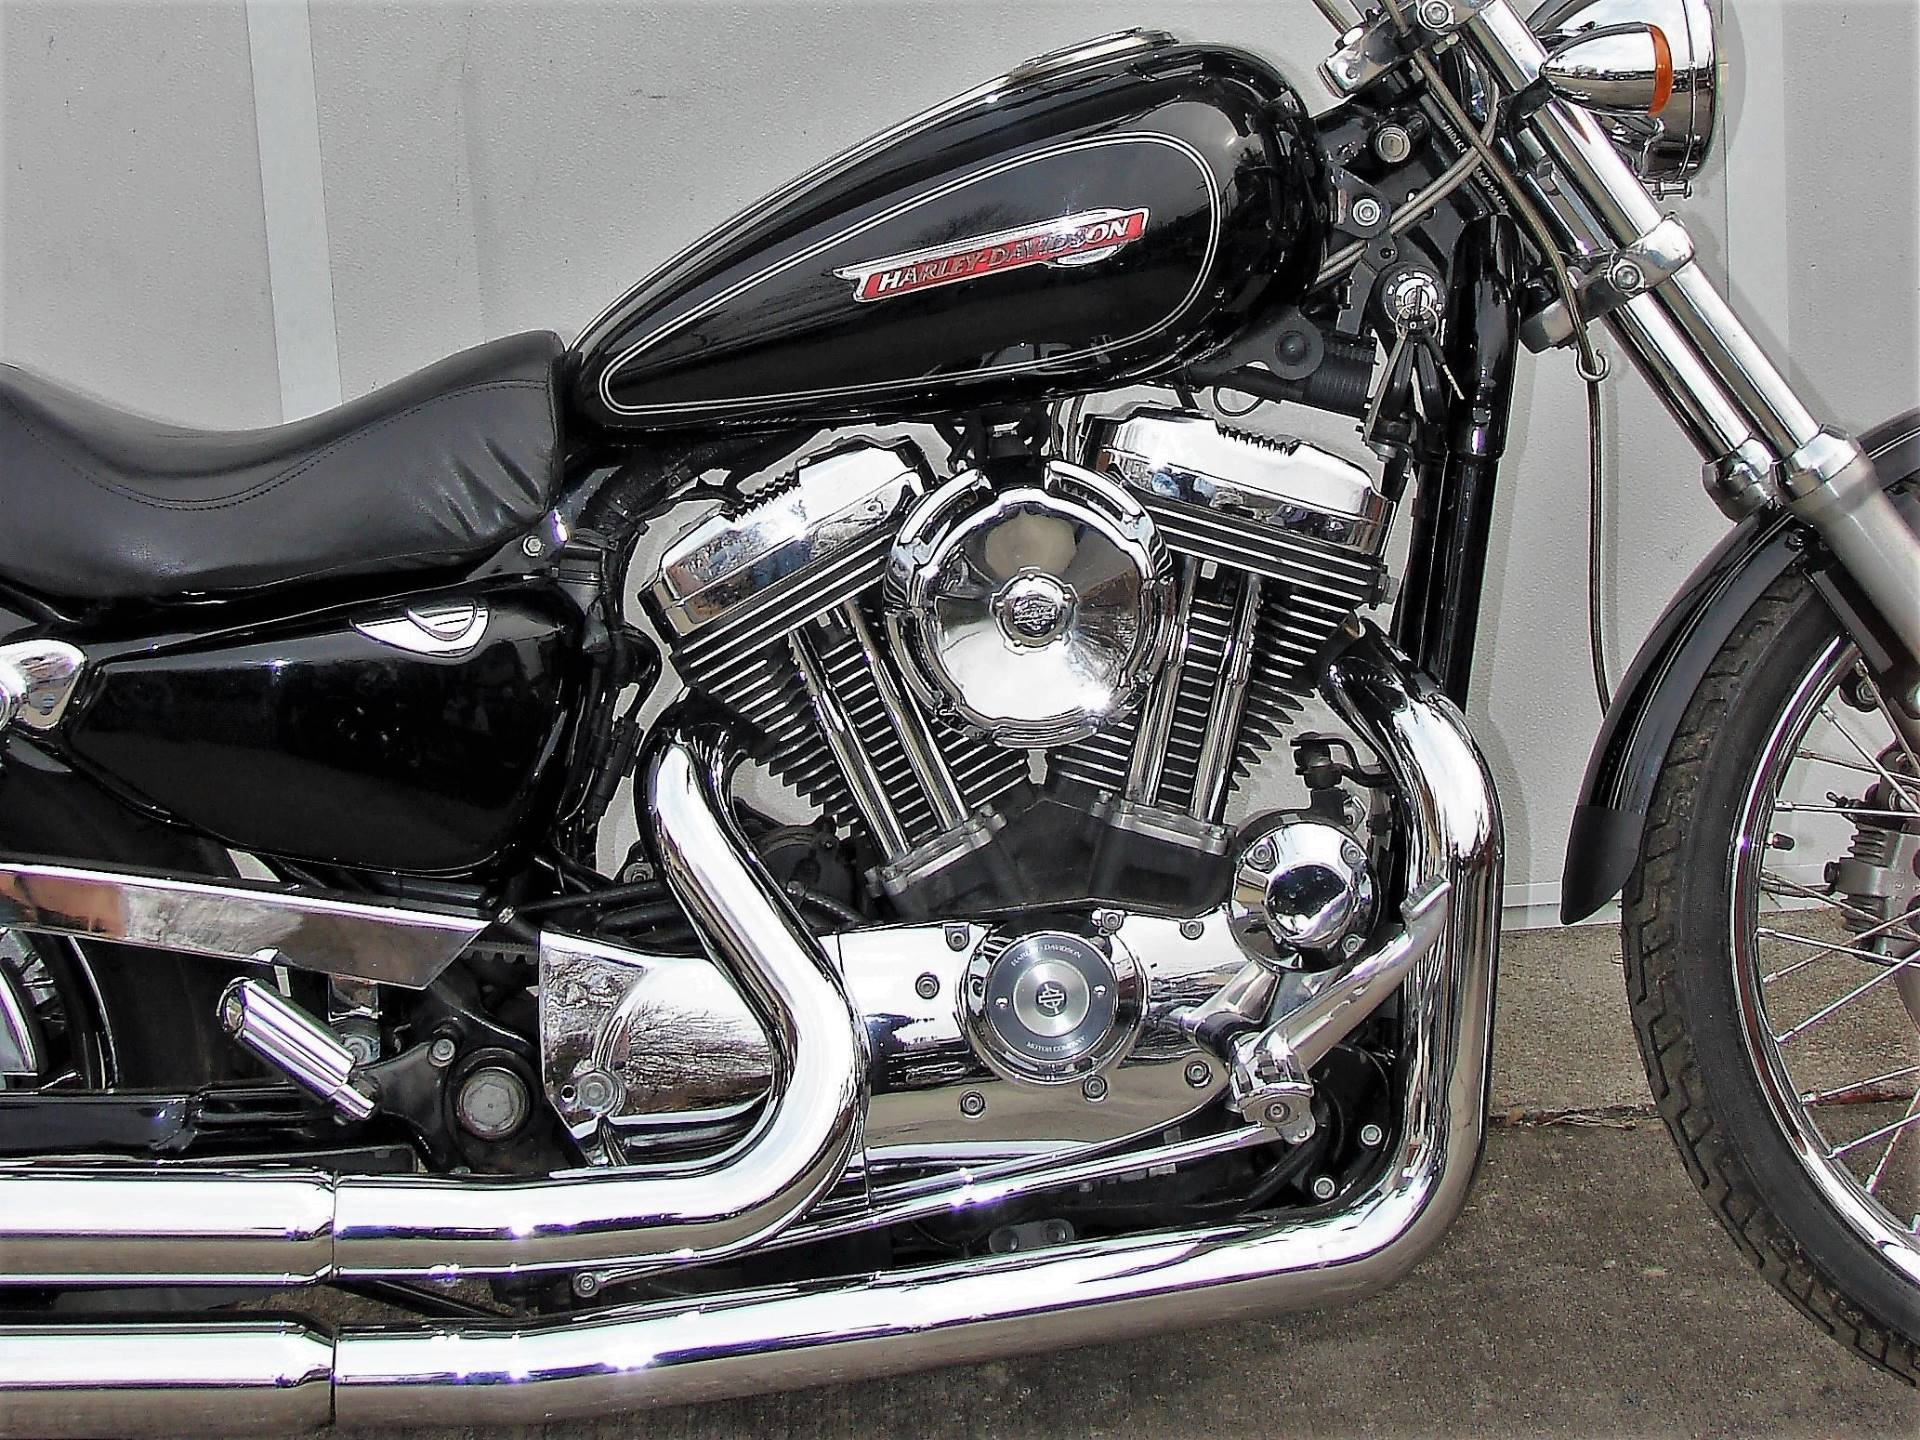 2008 Harley-Davidson 1200cc Sportster  (Black with Silver Pinstripe) in Williamstown, New Jersey - Photo 10